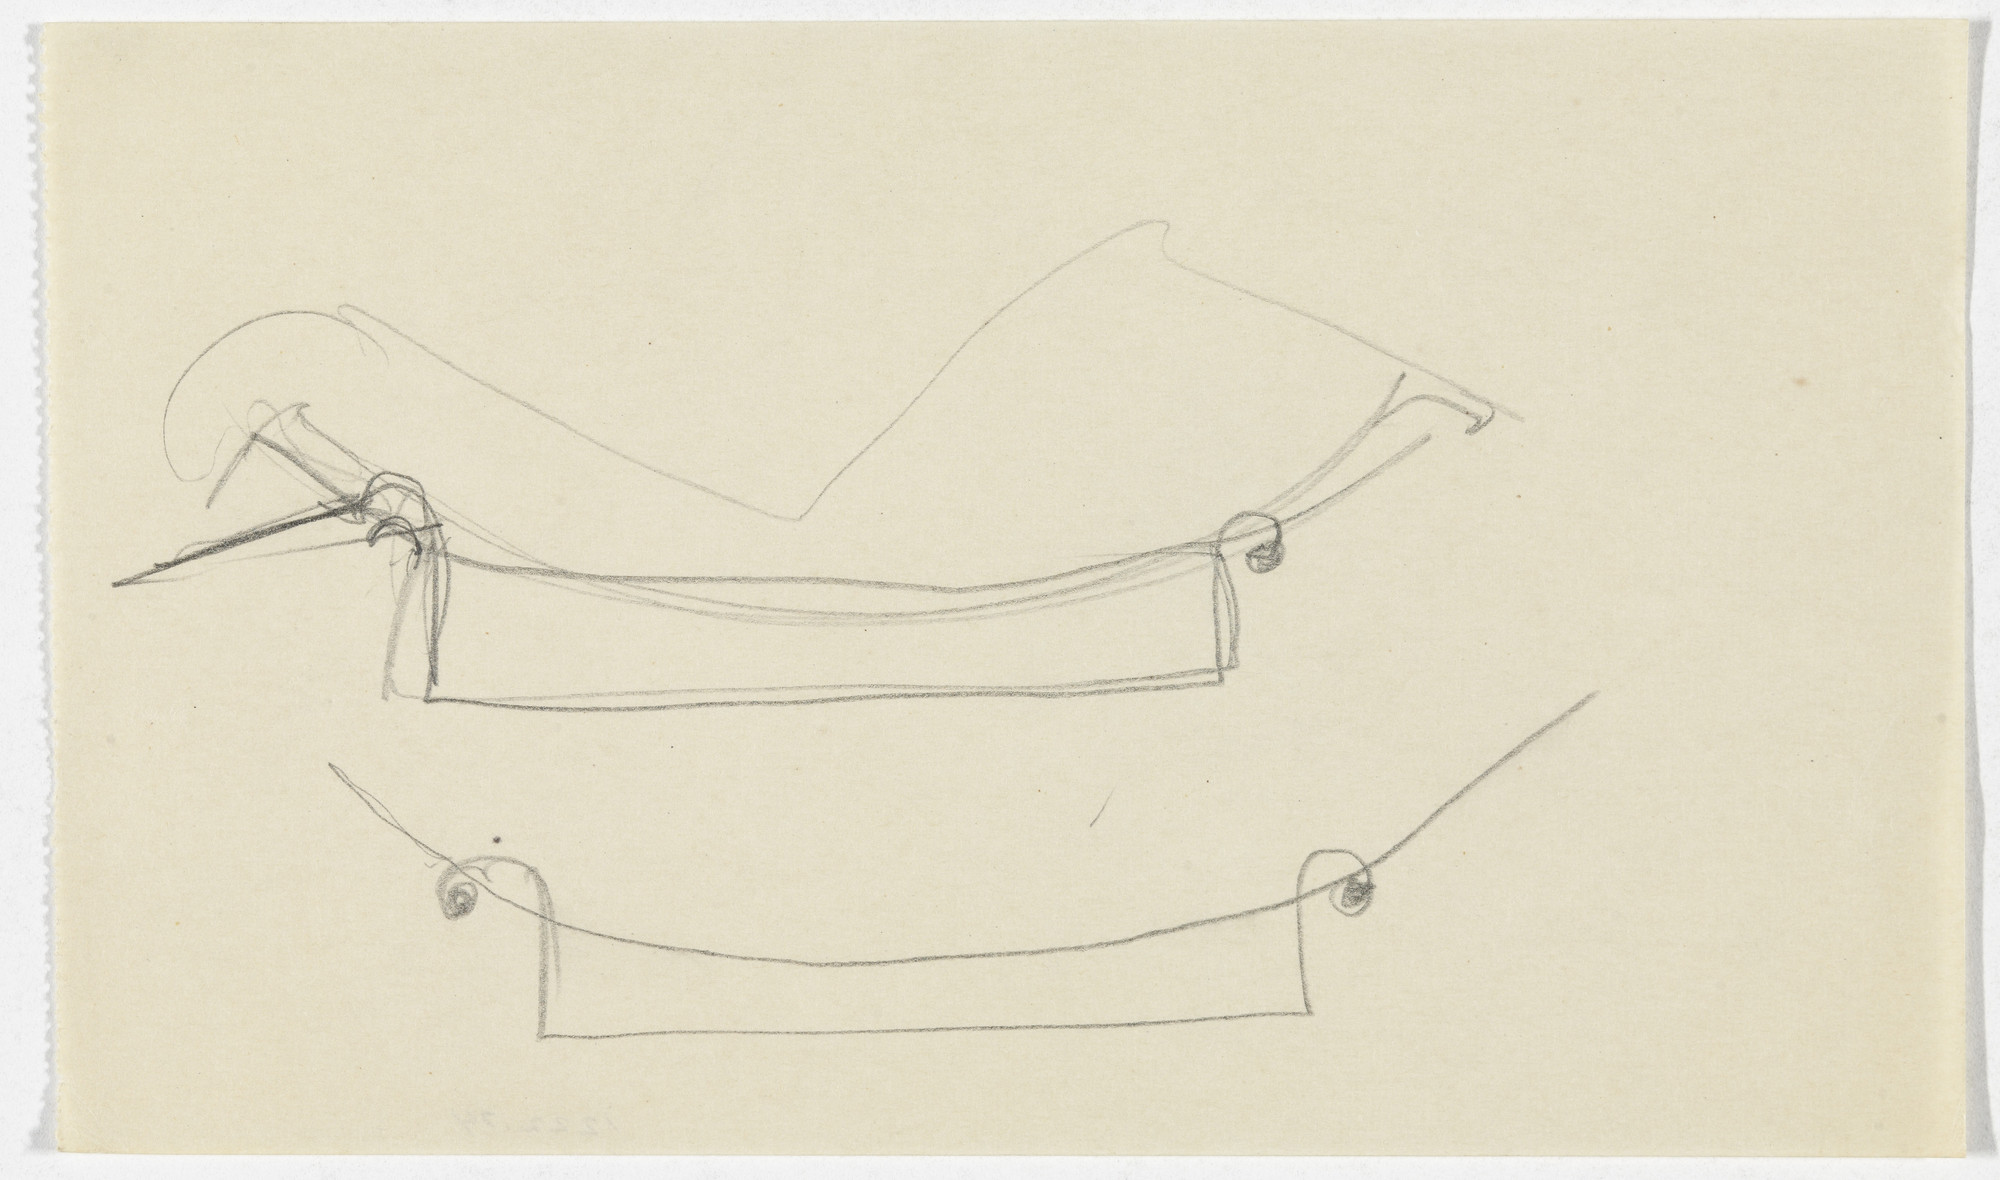 Ludwig Mies van der Rohe. Reclining Chair without Arms (Perspective and elevation sketch). 1934